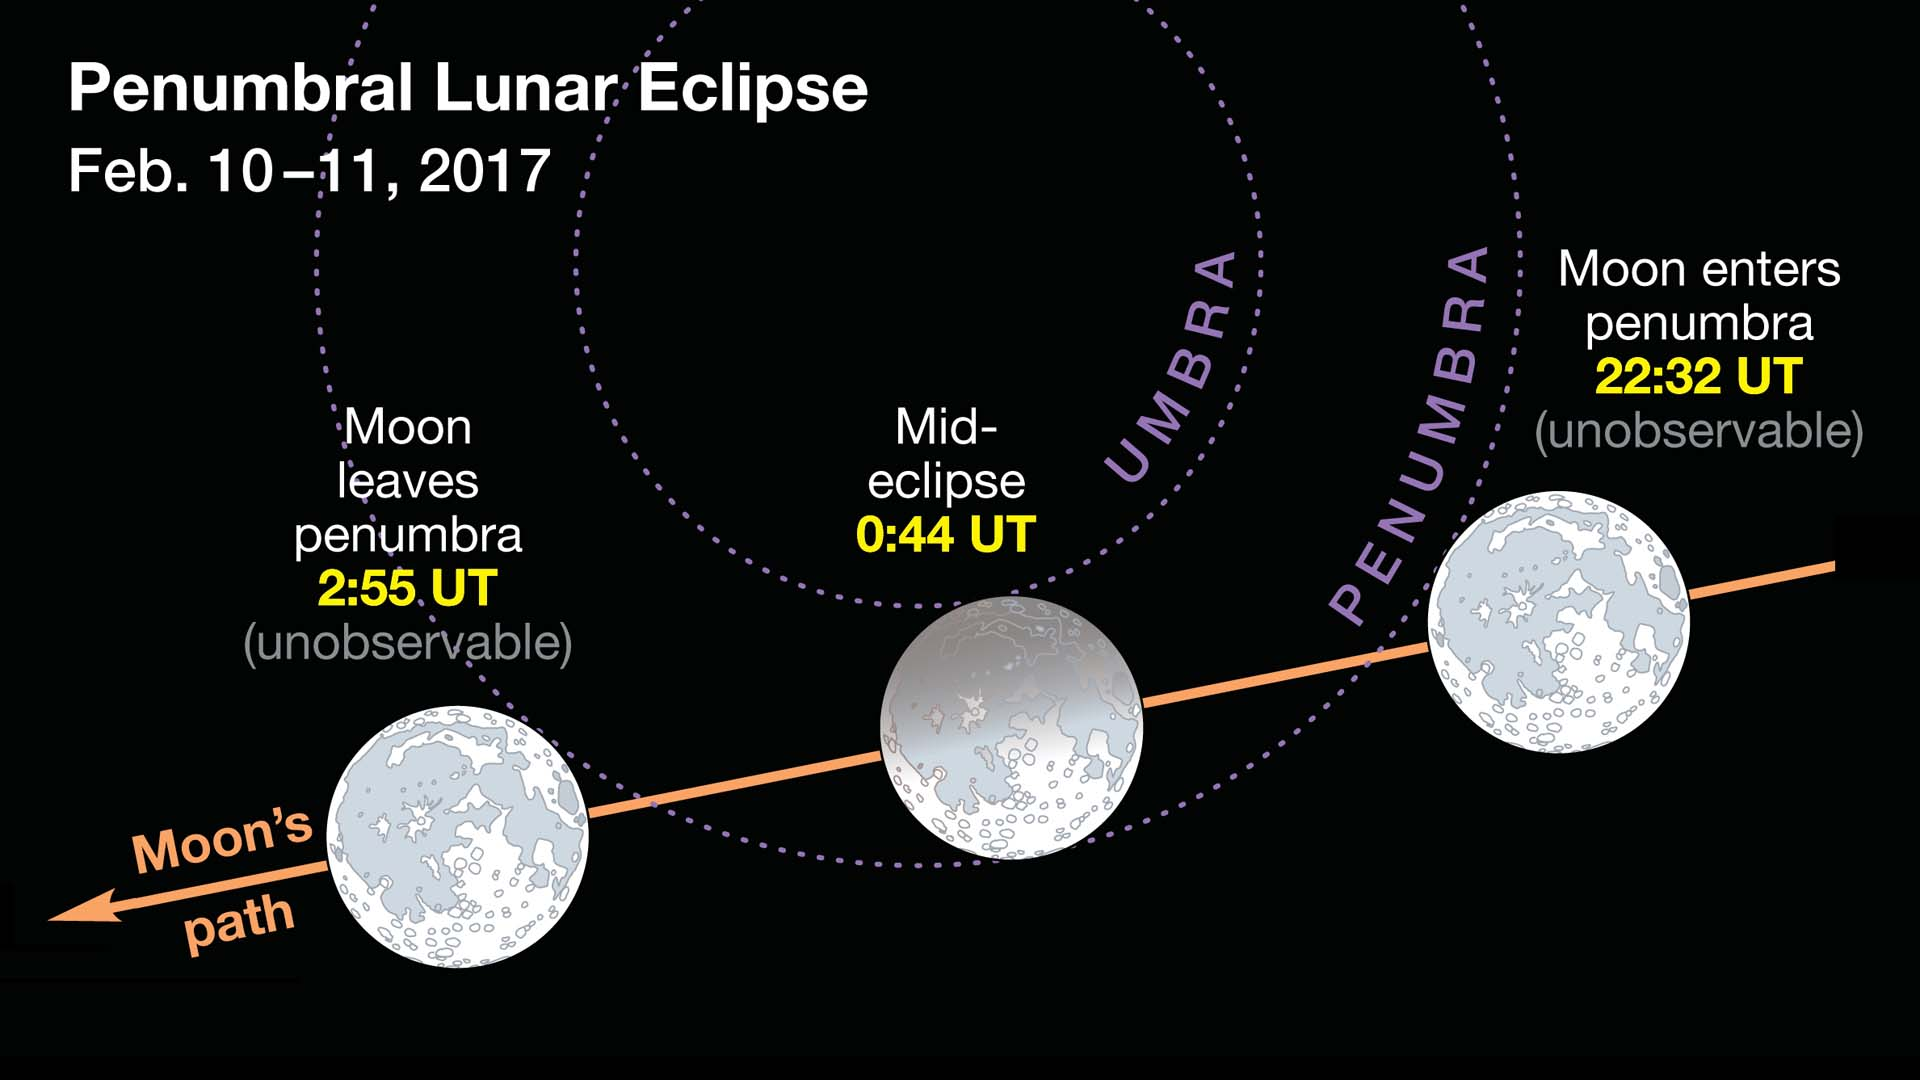 lunar eclipse february 10 2017, penumbral lunar eclipse february 10 2017